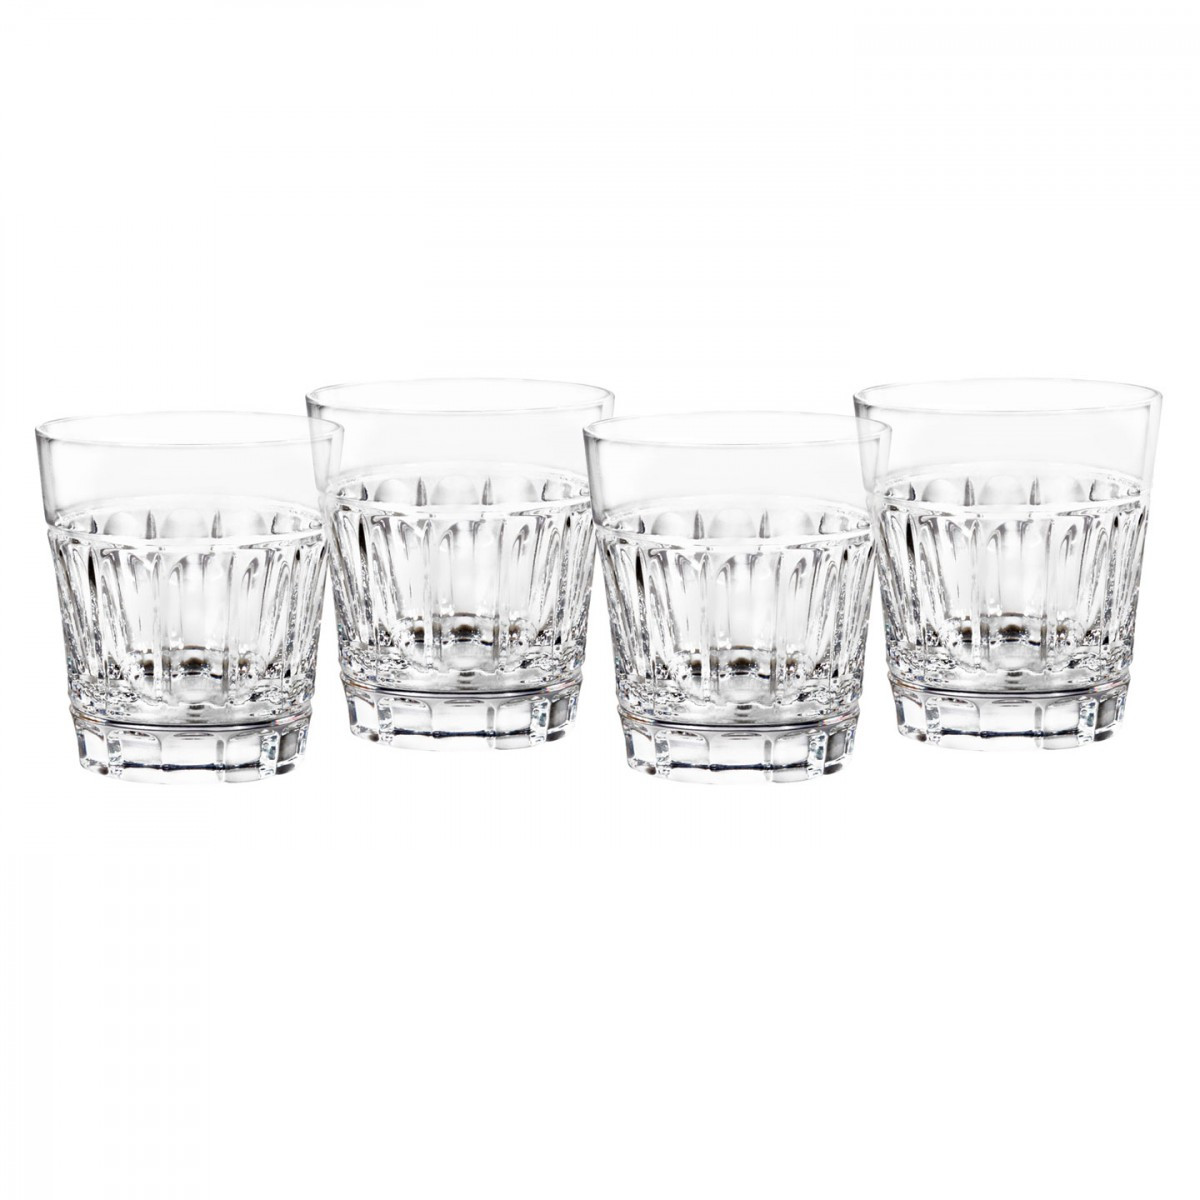 marquis by waterford shelton vase 12 of bolton double old fashioned set of 4 waterford us in bolton double old fashioned set of 4